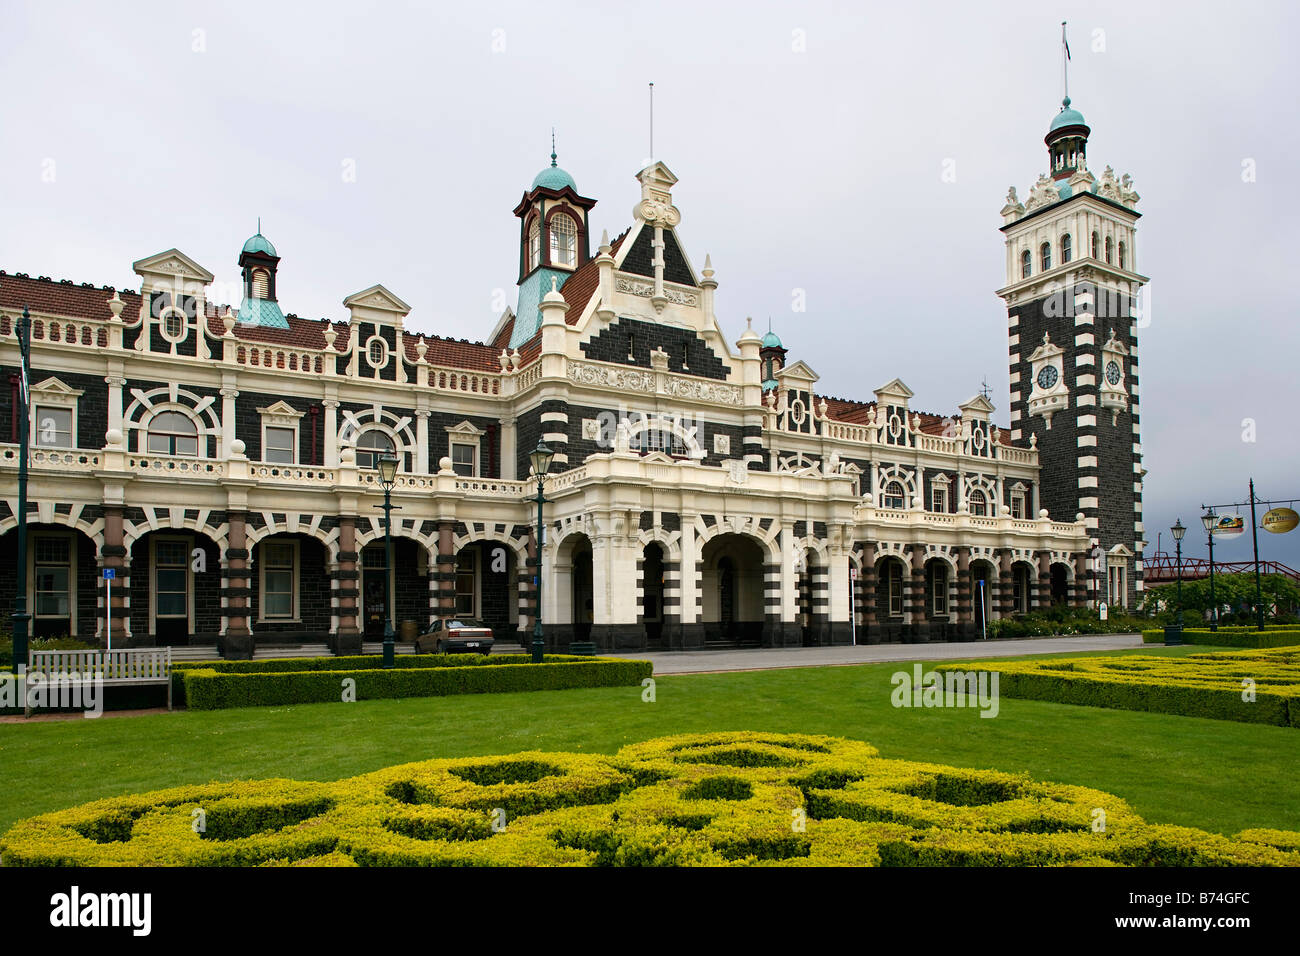 New Zealand, South Island, Dunedin, Railway station. - Stock Image